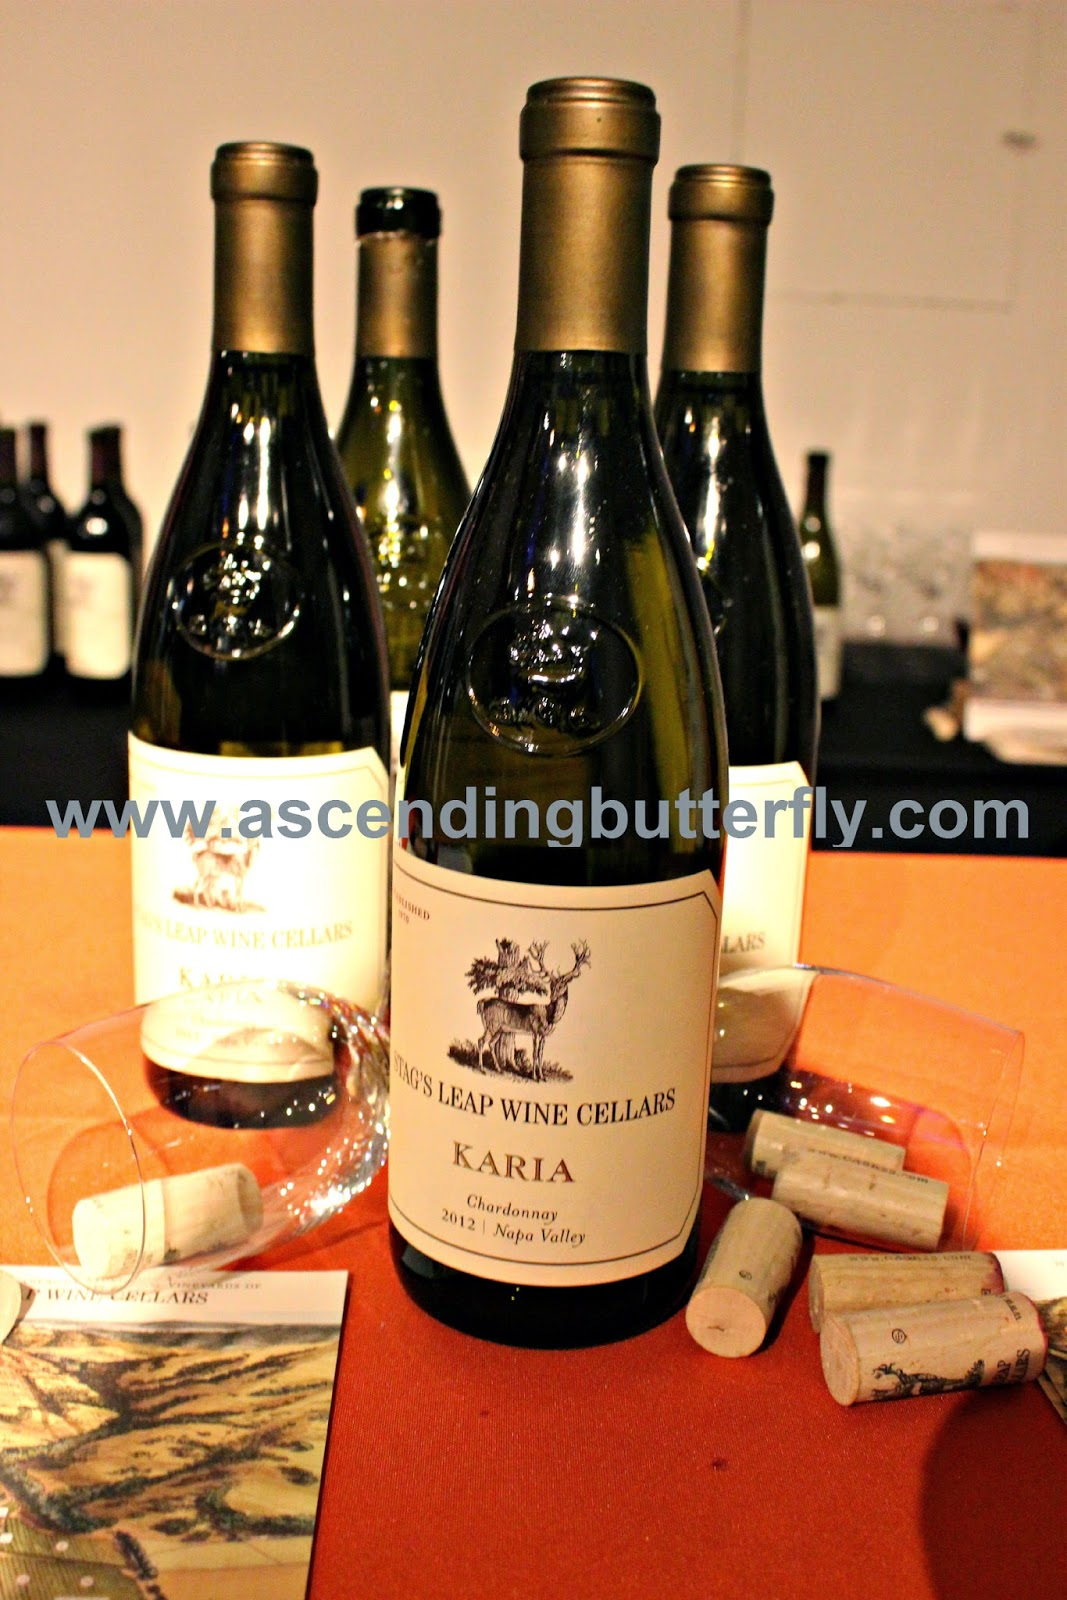 Stag's Leap Wine Cellars Karia Chardonnay Napa Valley The Luxury Review Fall 2014